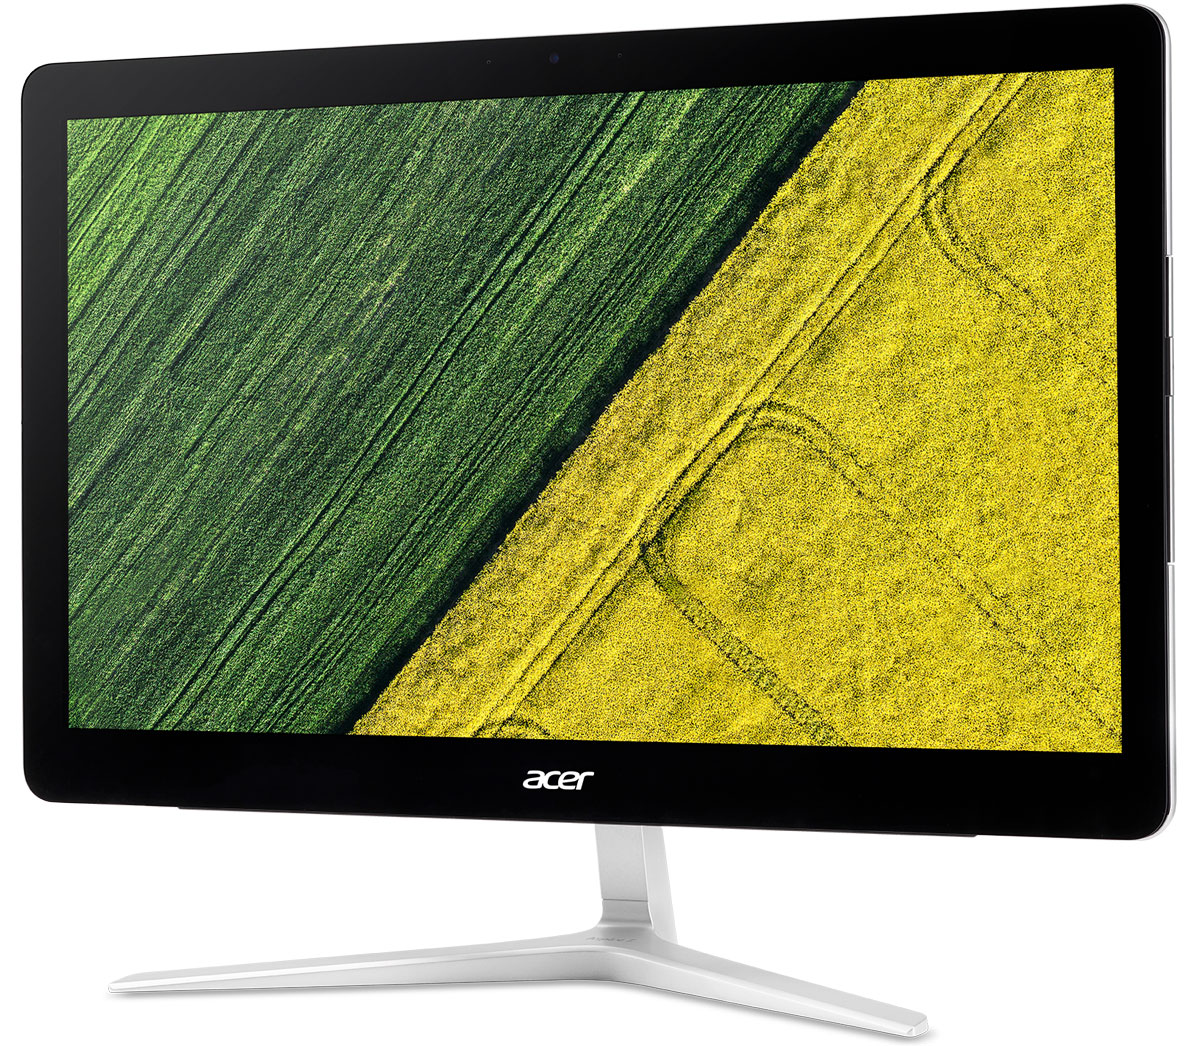 Acer Aspire Z24-880, Black Silver моноблок (DQ.B8TER.006)